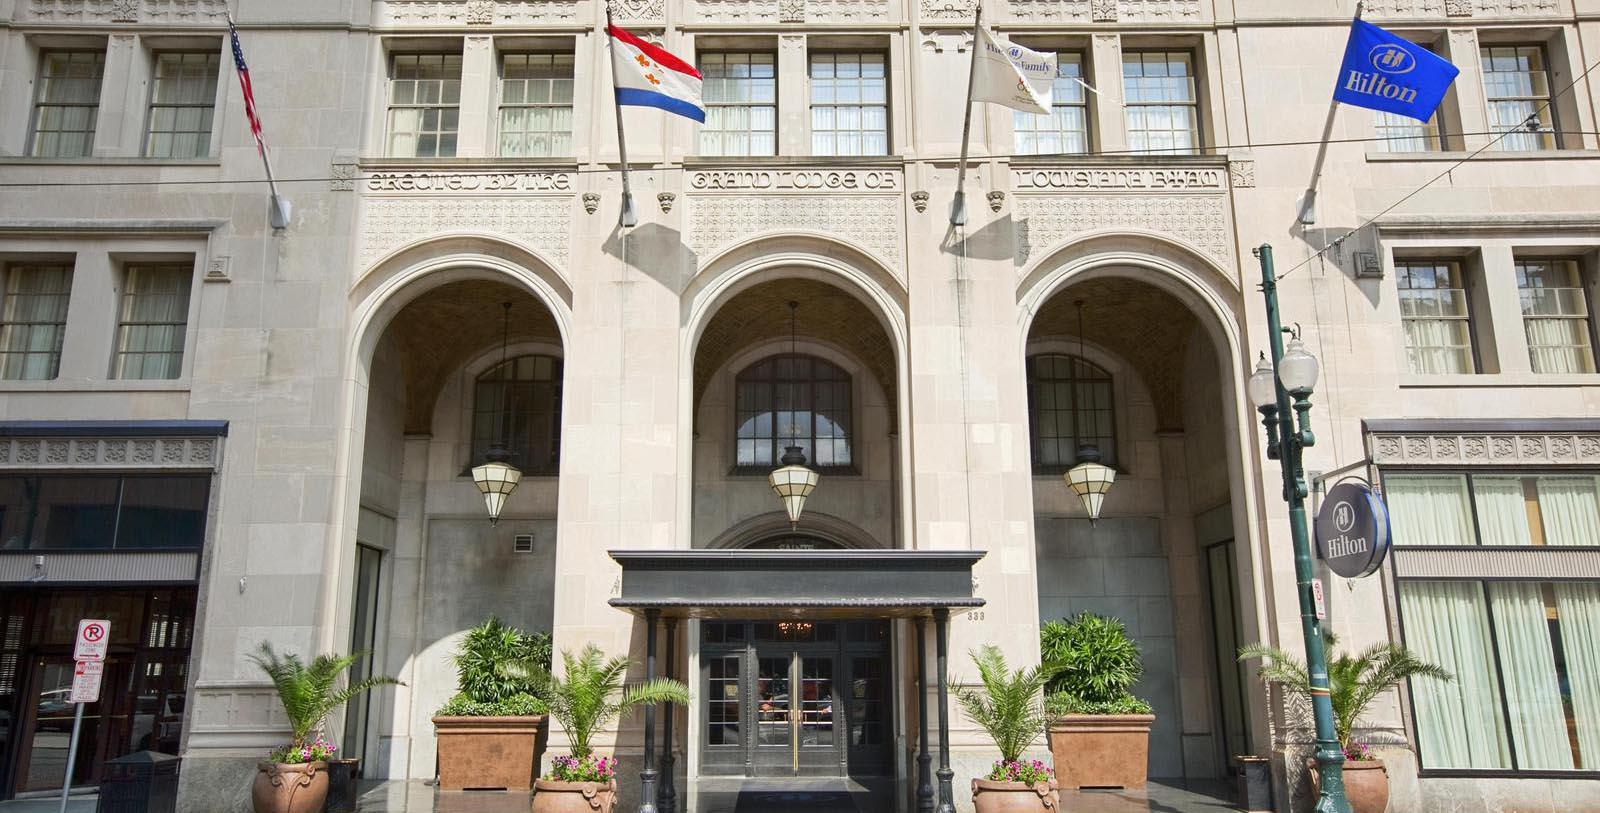 Image of hotel exterior entrance Hilton New Orleans/St. Charles Avenue, 1926, Member of Historic Hotels of America, in New Orleans, Louisiana, Special Offers, Discounted Rates, Families, Romantic Escape, Honeymoons, Anniversaries, Reunions